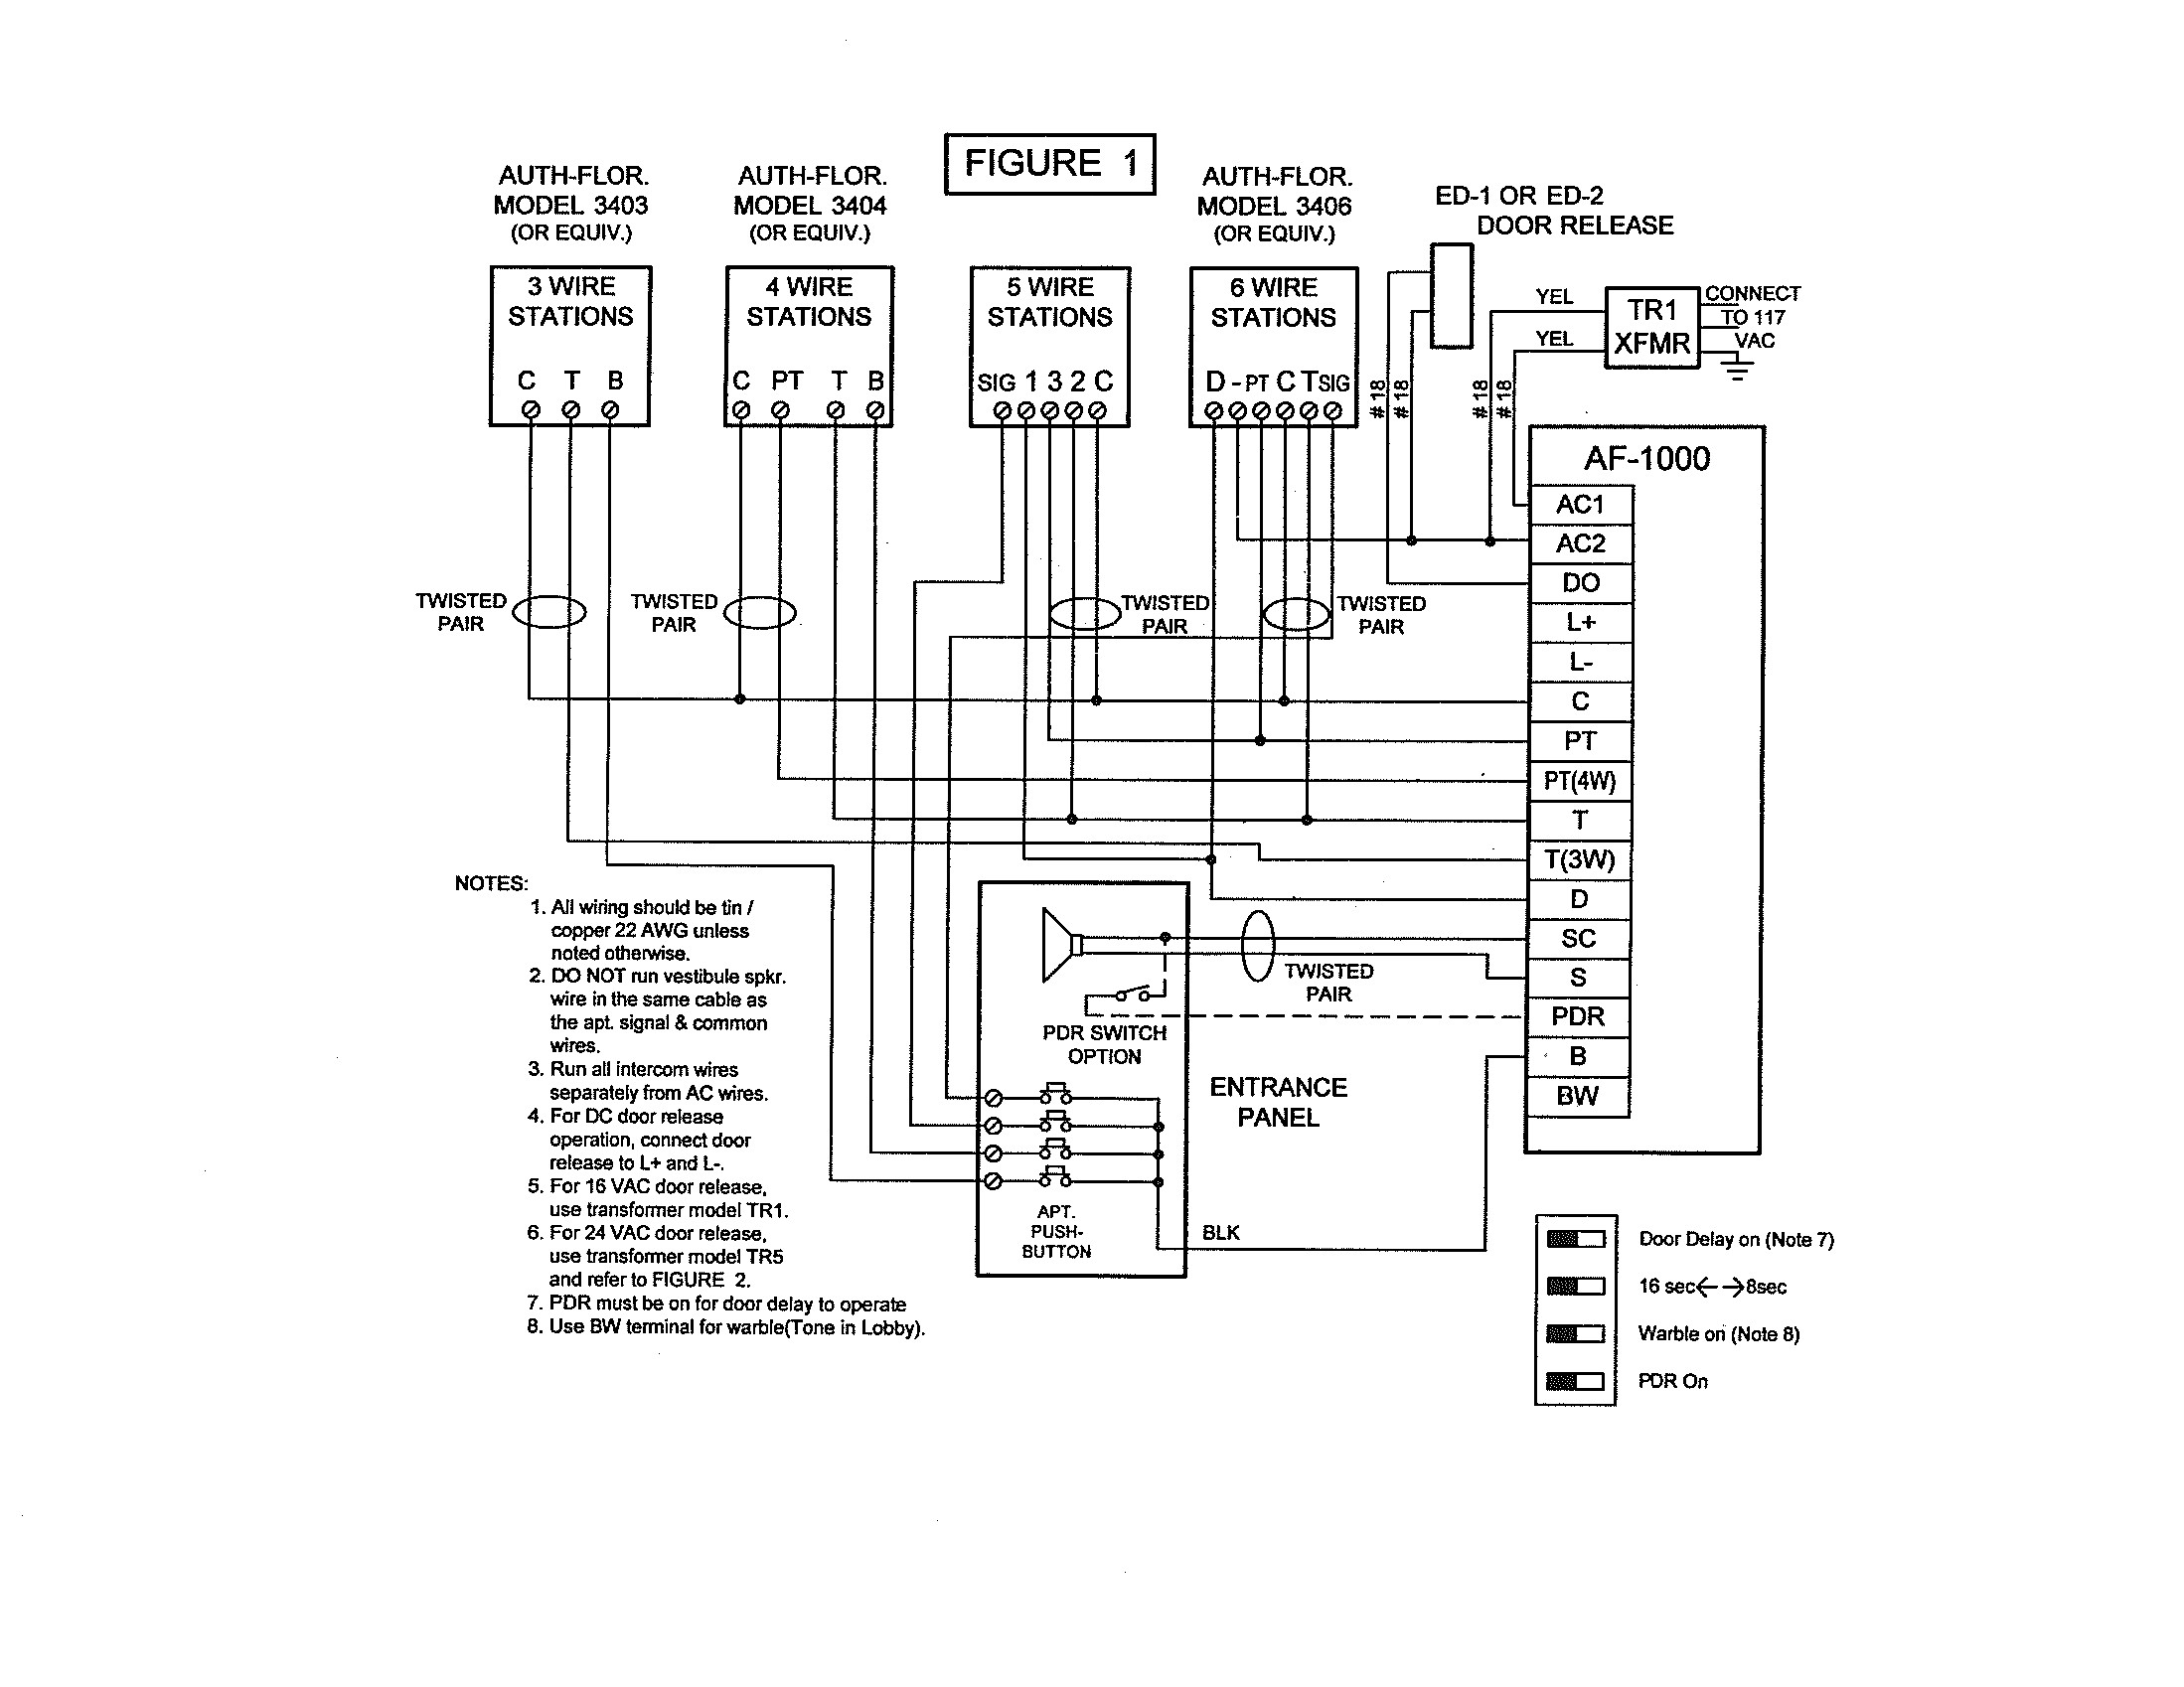 pacific electronics af3600 af 3600 transfer relay unit rh leedan com Florence Intercom System Wiring Diagram 2Wire Intercom Schematic